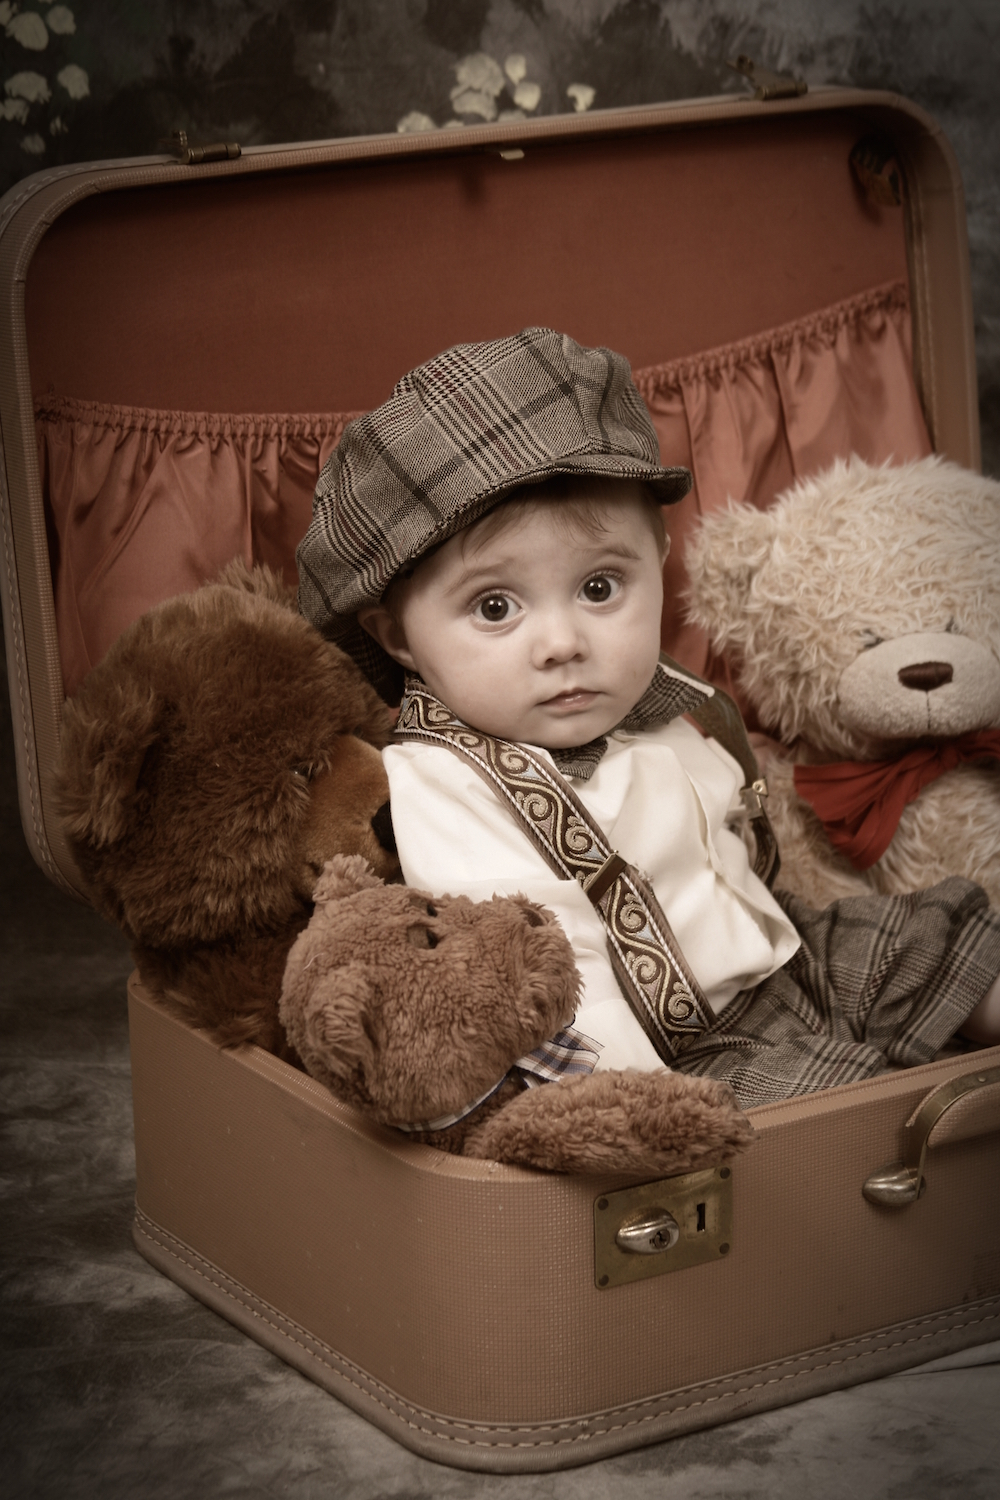 Top 10 Tips for Stress-Free Moving With Kids - Let Them Pack a Special Suitcase